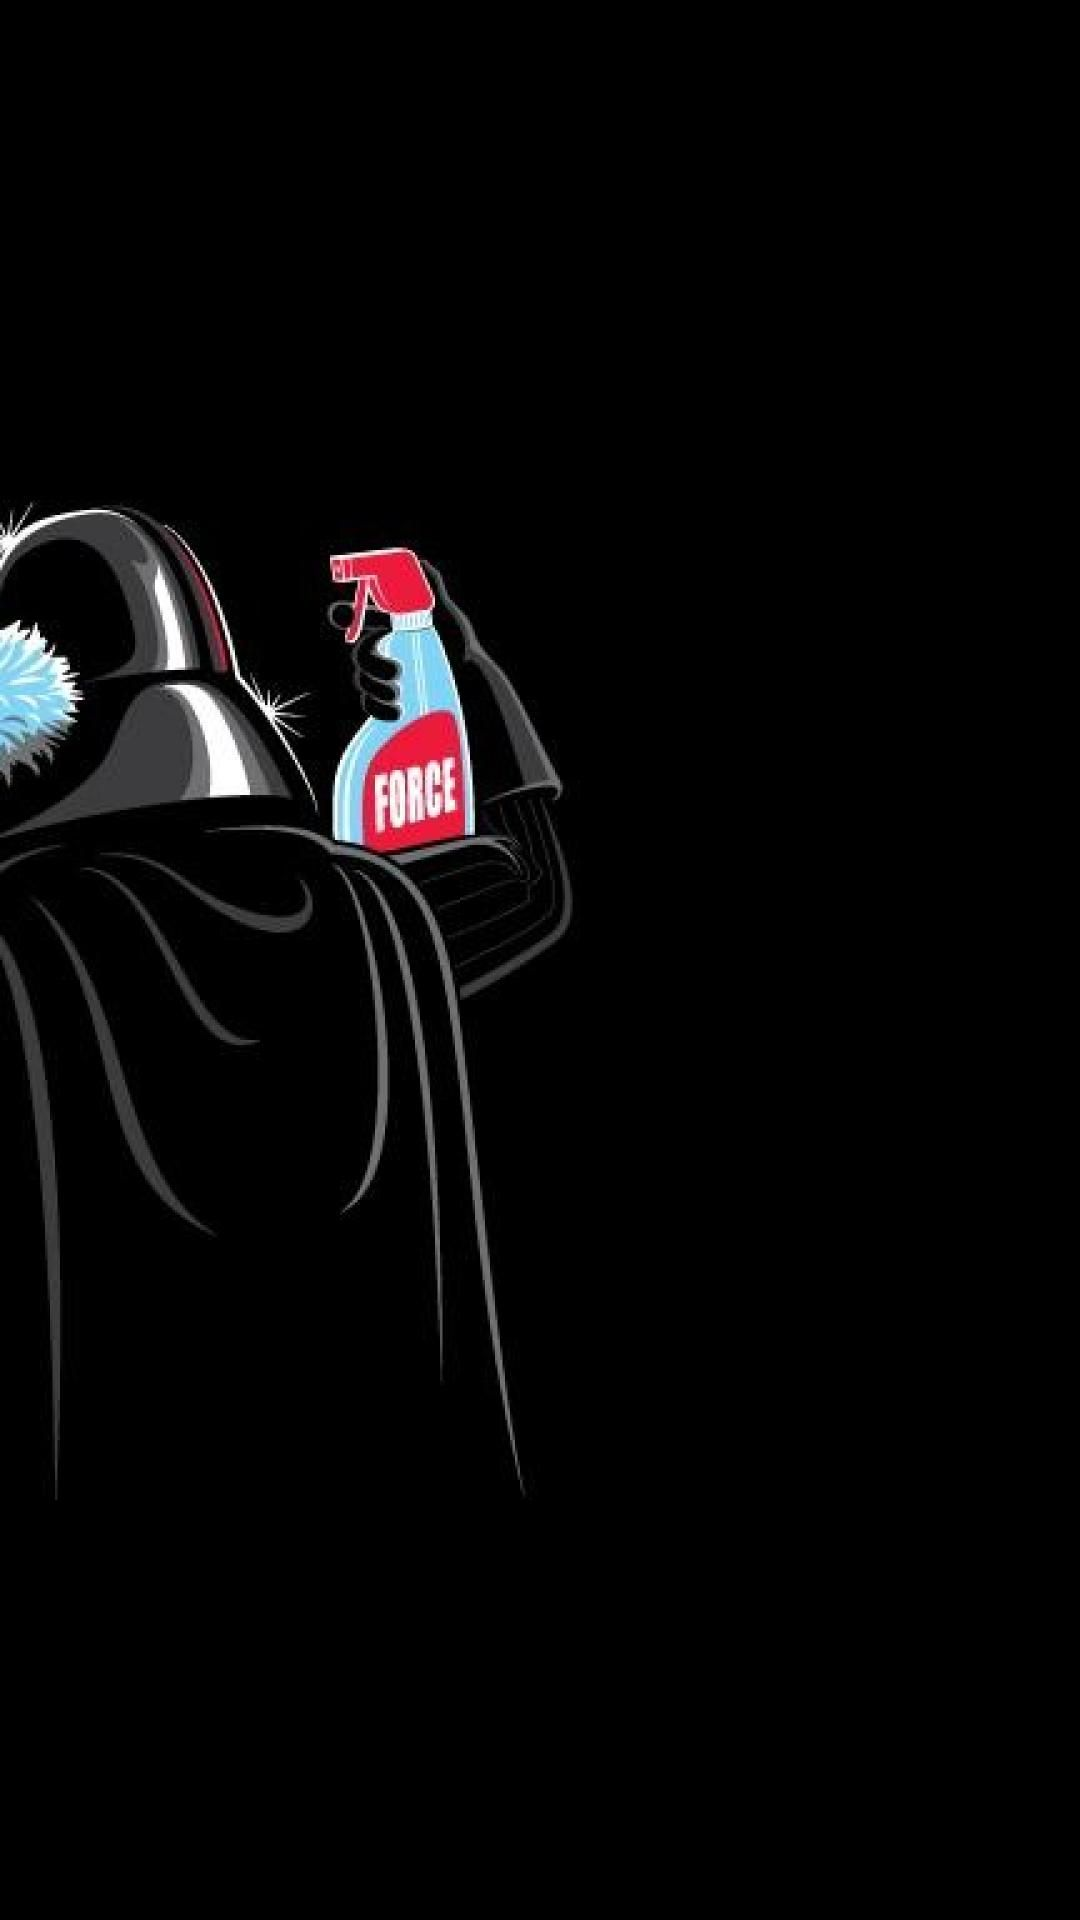 1080x1920 Free download Cool Star Wars Funny Iphone 6 Plus Wallpaper ...